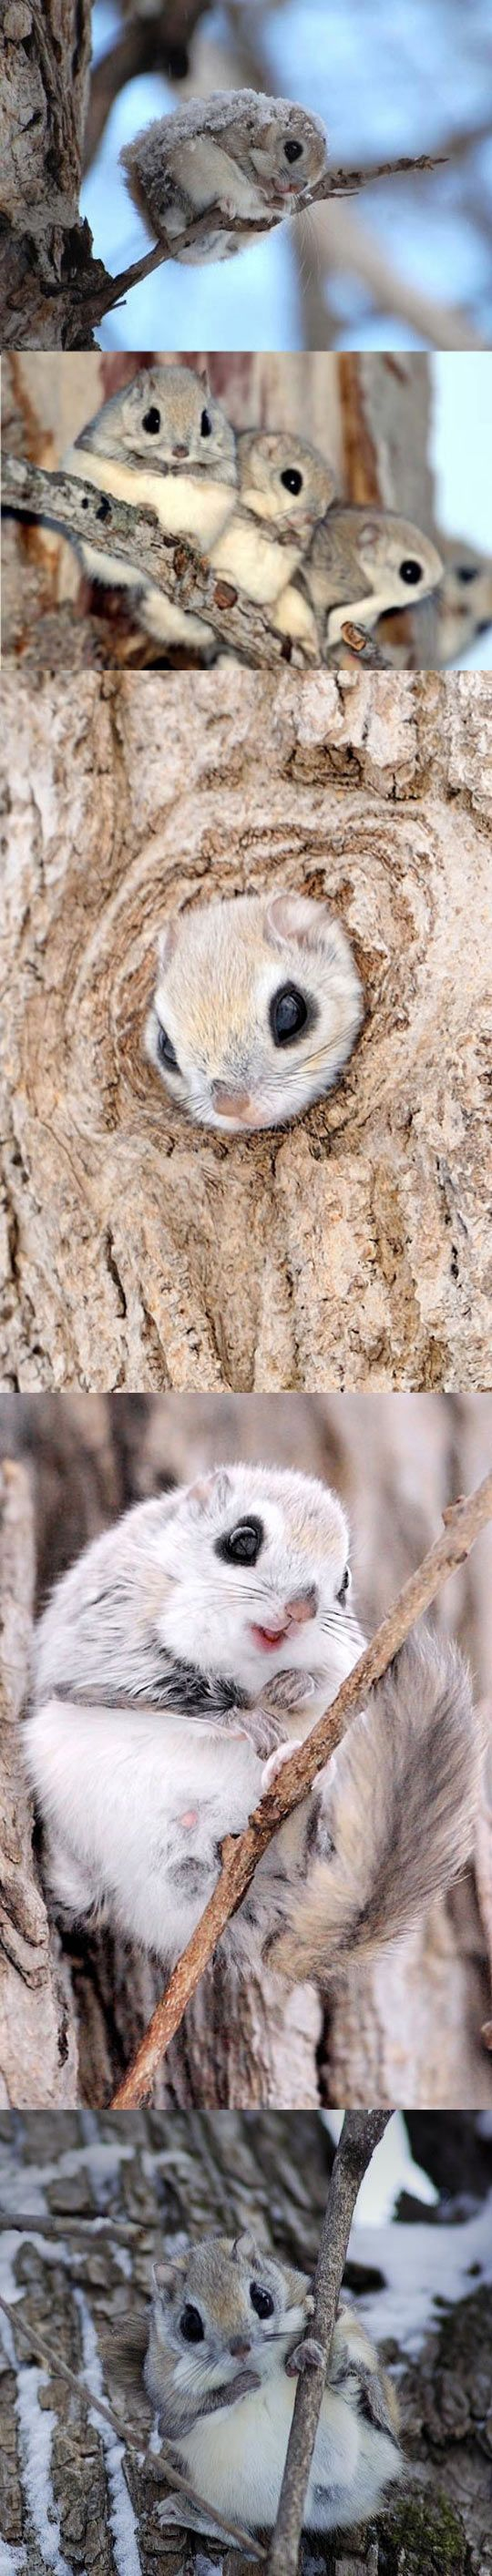 Siberian or Russian flying squirrels